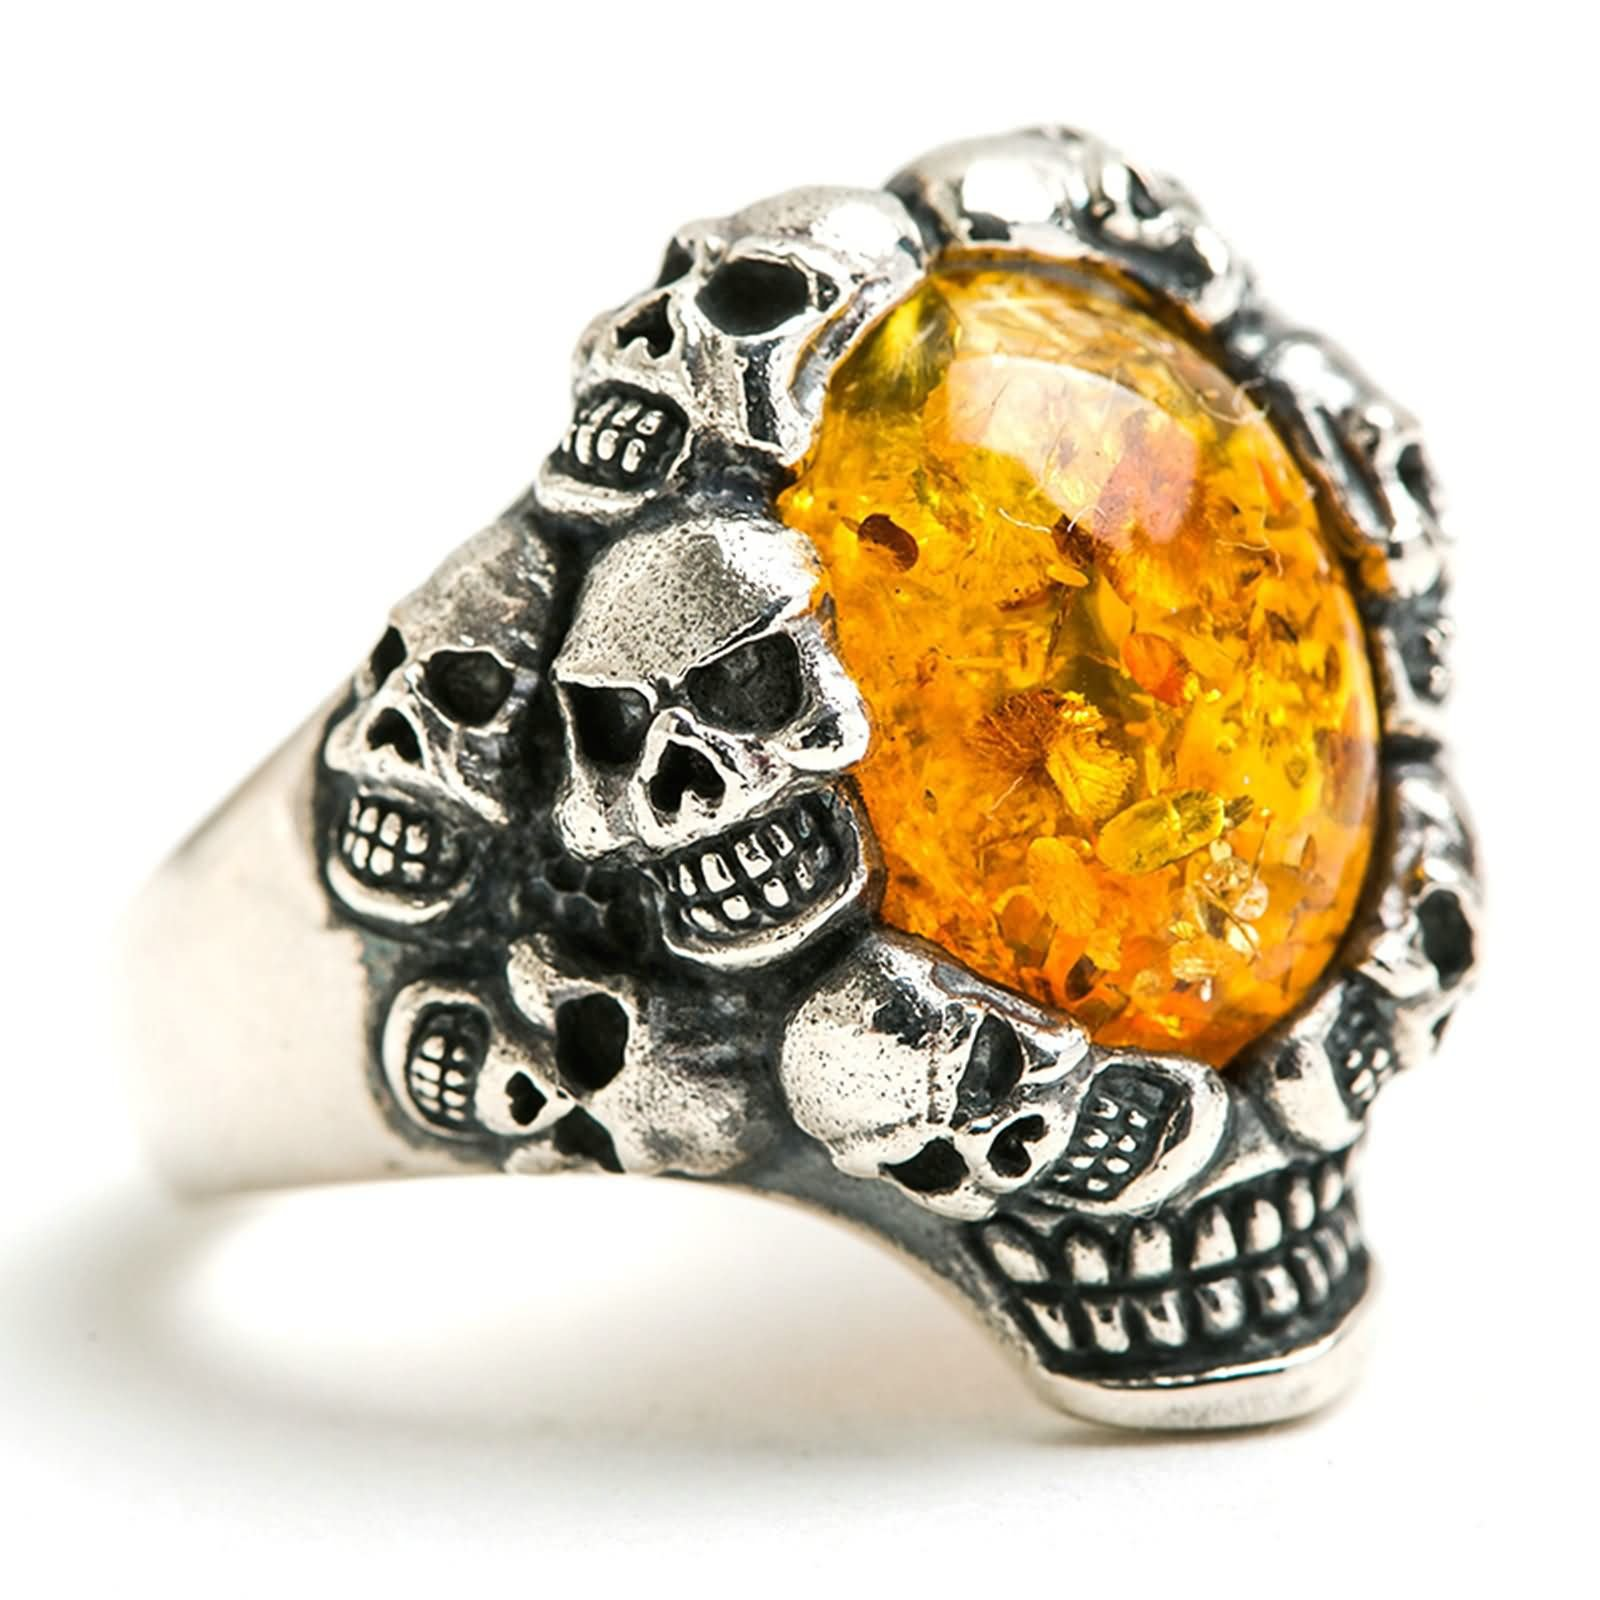 Bishilin Rings for Men Silver Plated Skull Oval Amber Friendship Rings Silver Size 12.5 by Bishilin (Image #2)